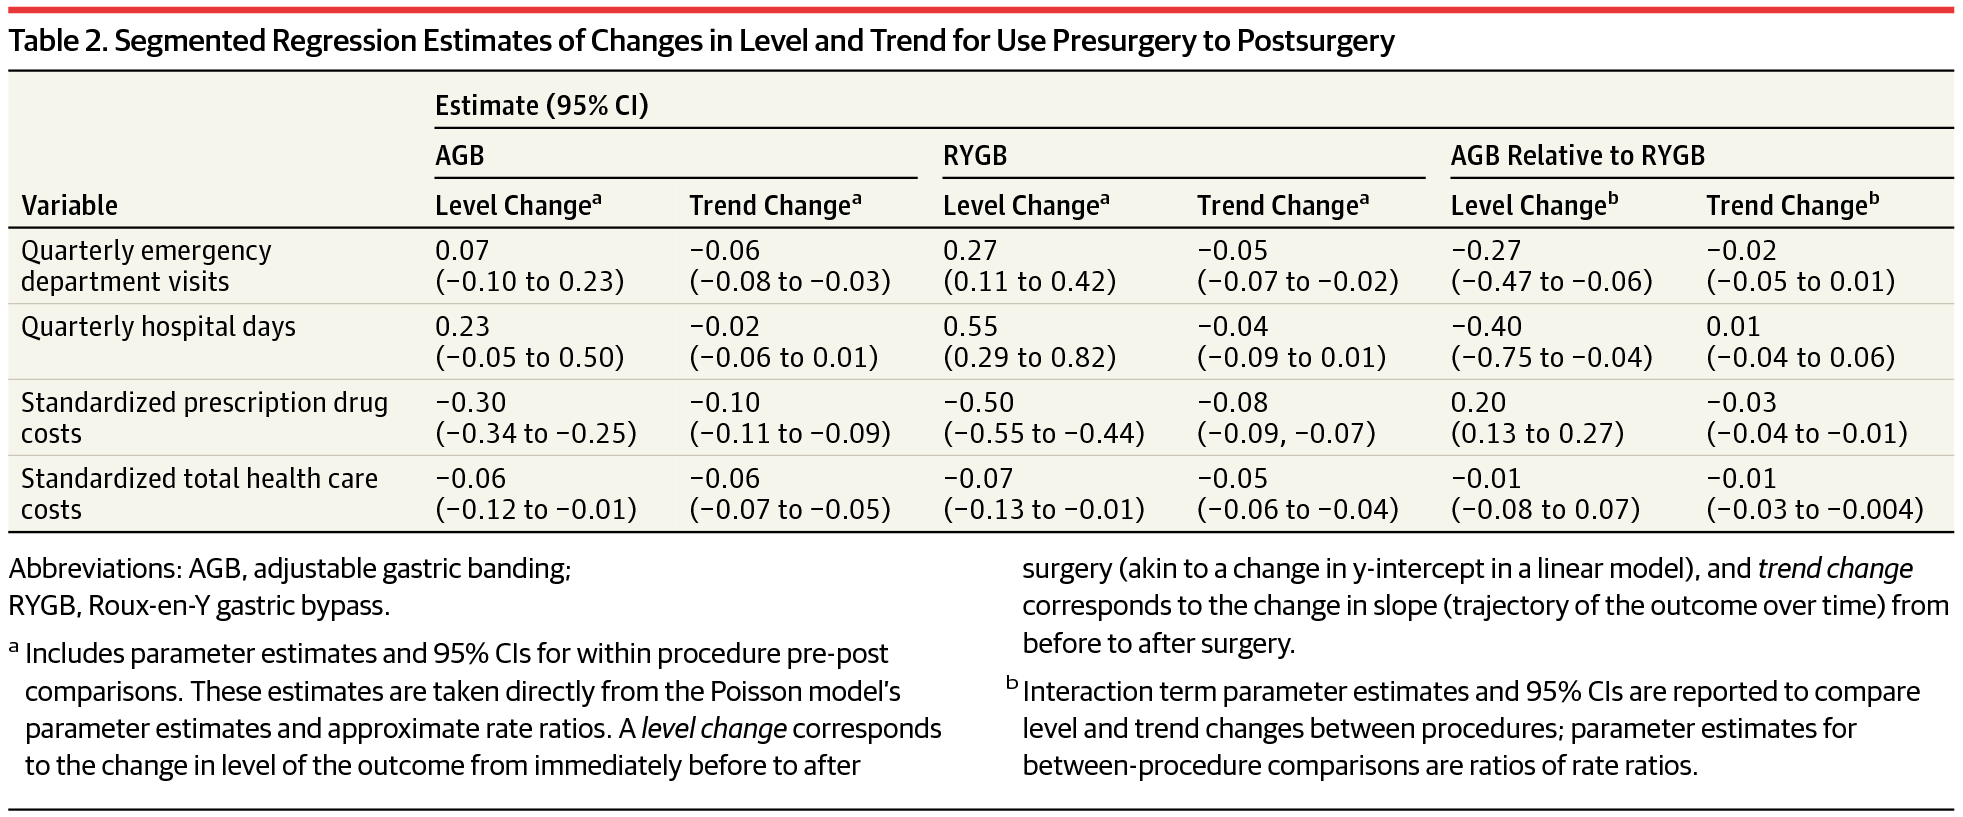 Comparing Medical Costs And Use After Laparoscopic Adjustable